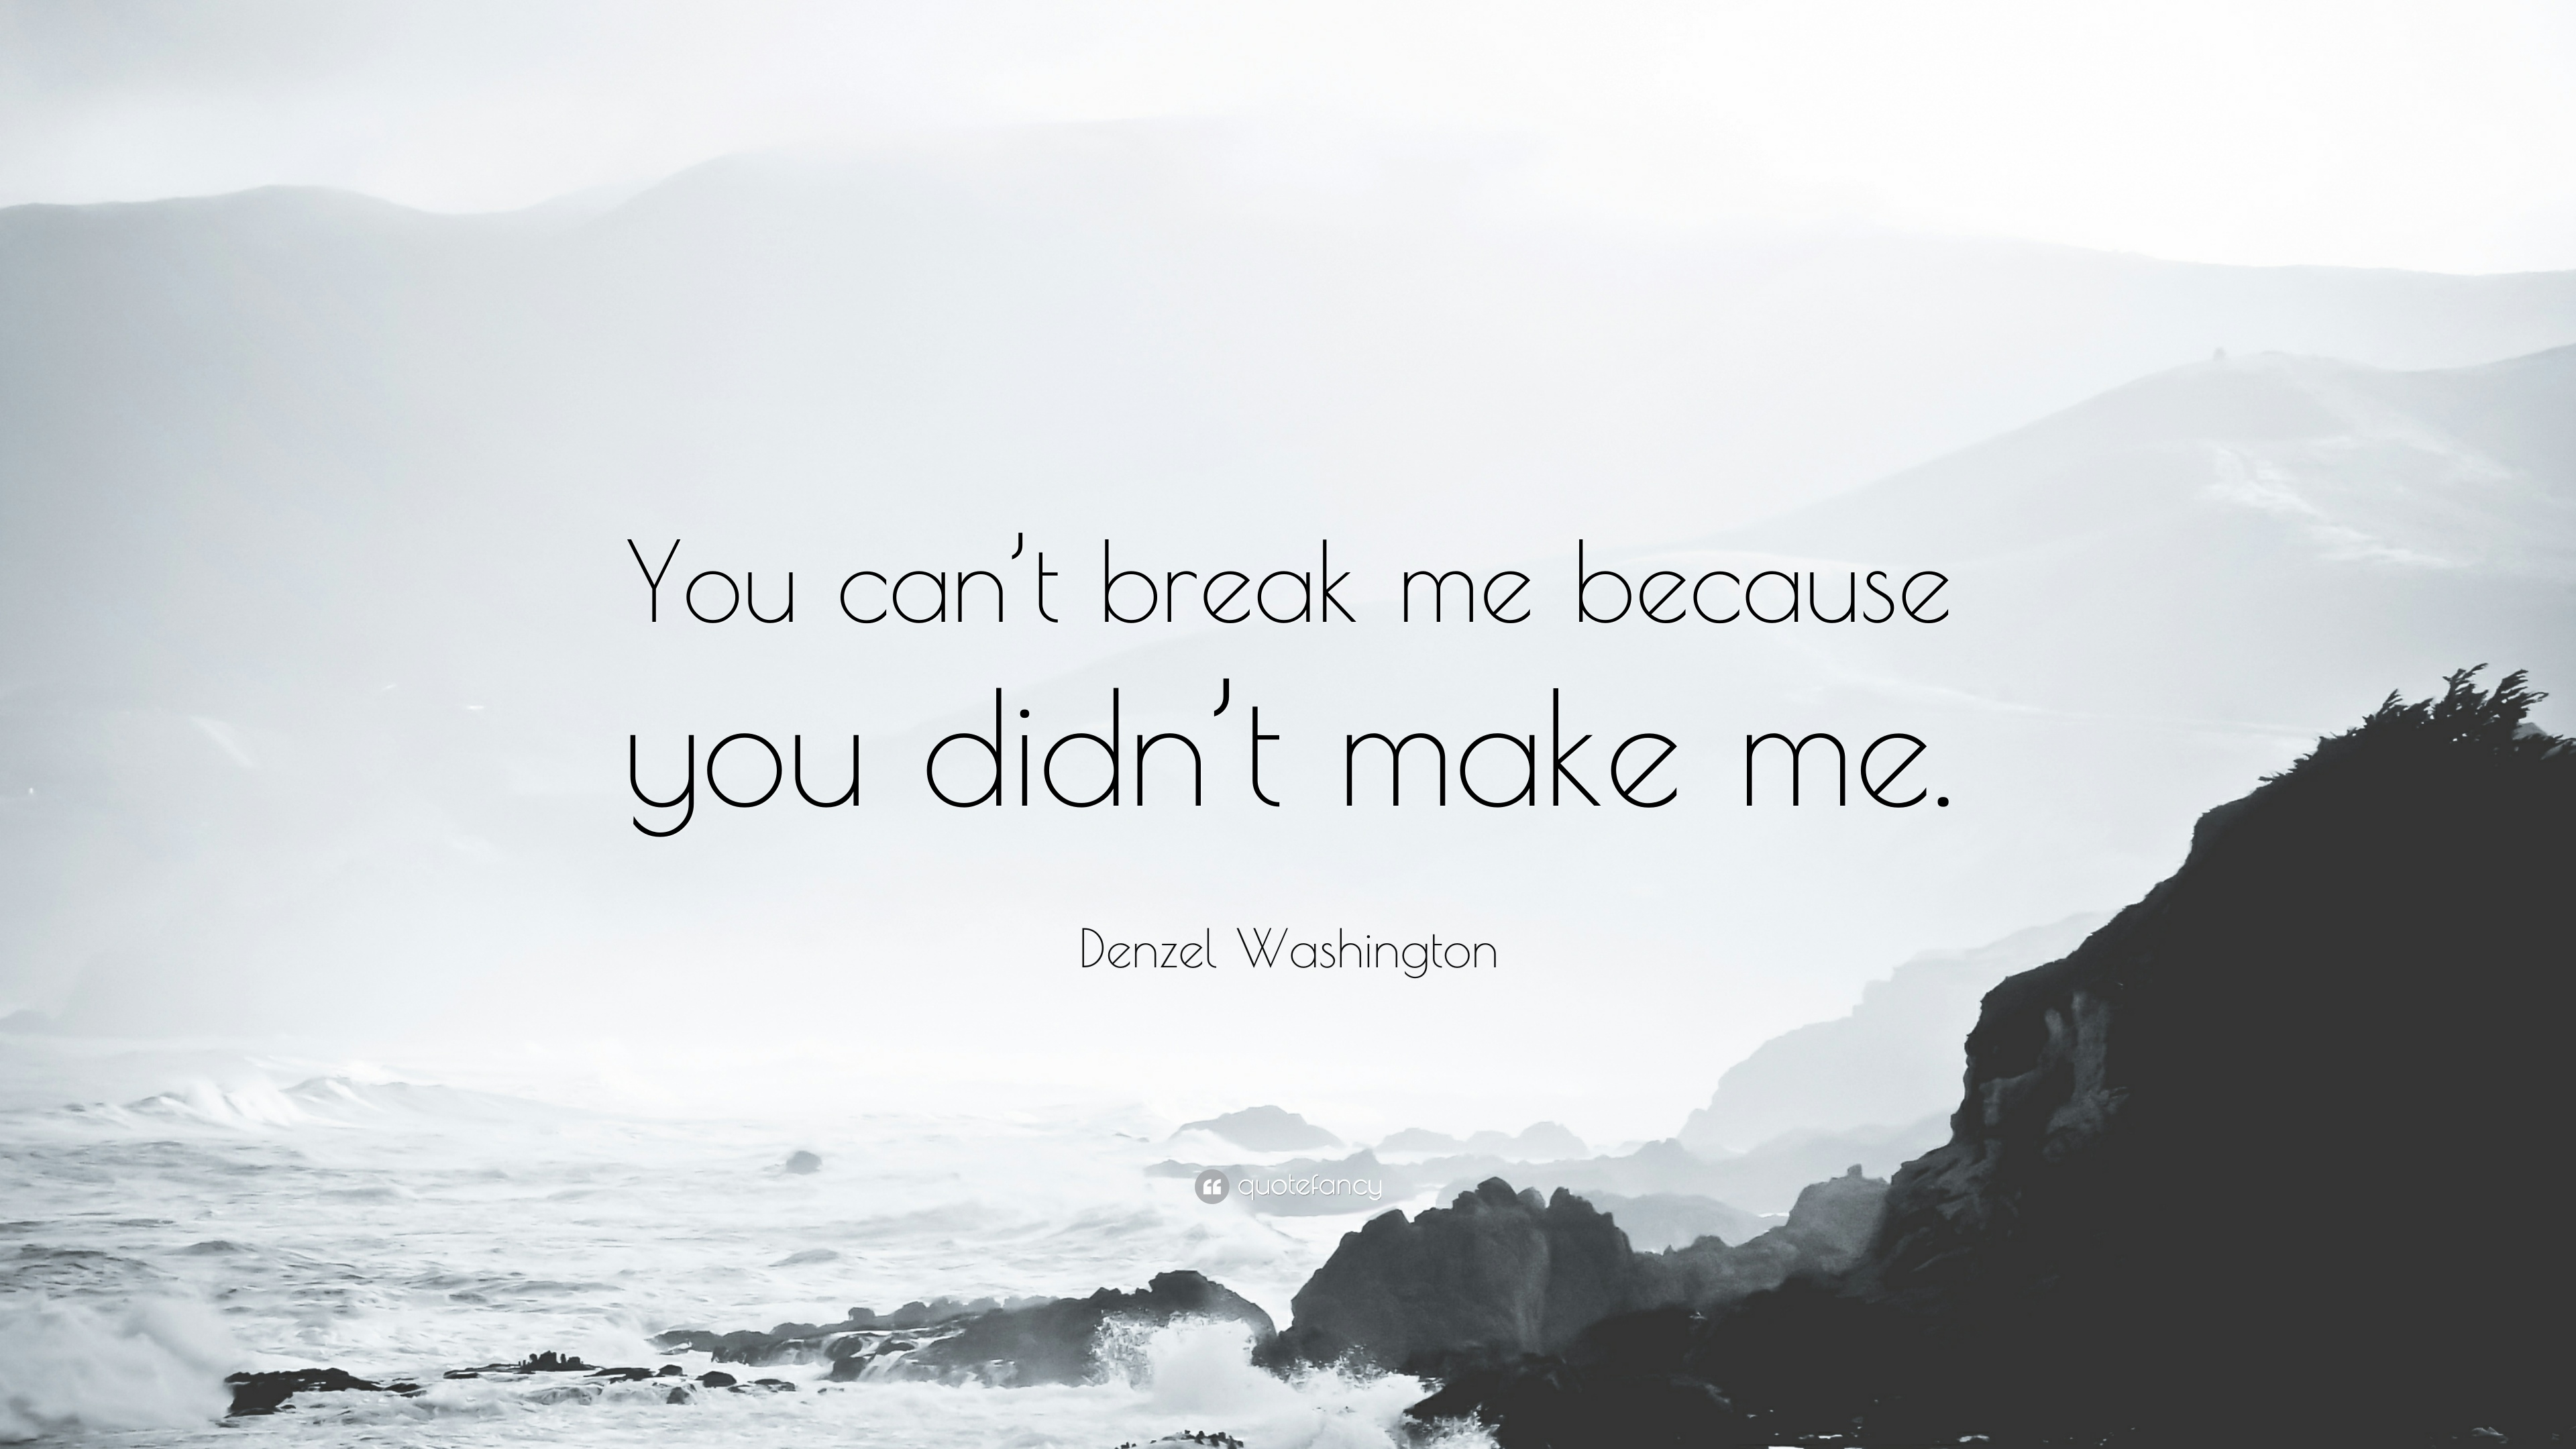 Denzel Washington Quote You Cant Break Me Because You Didnt Make